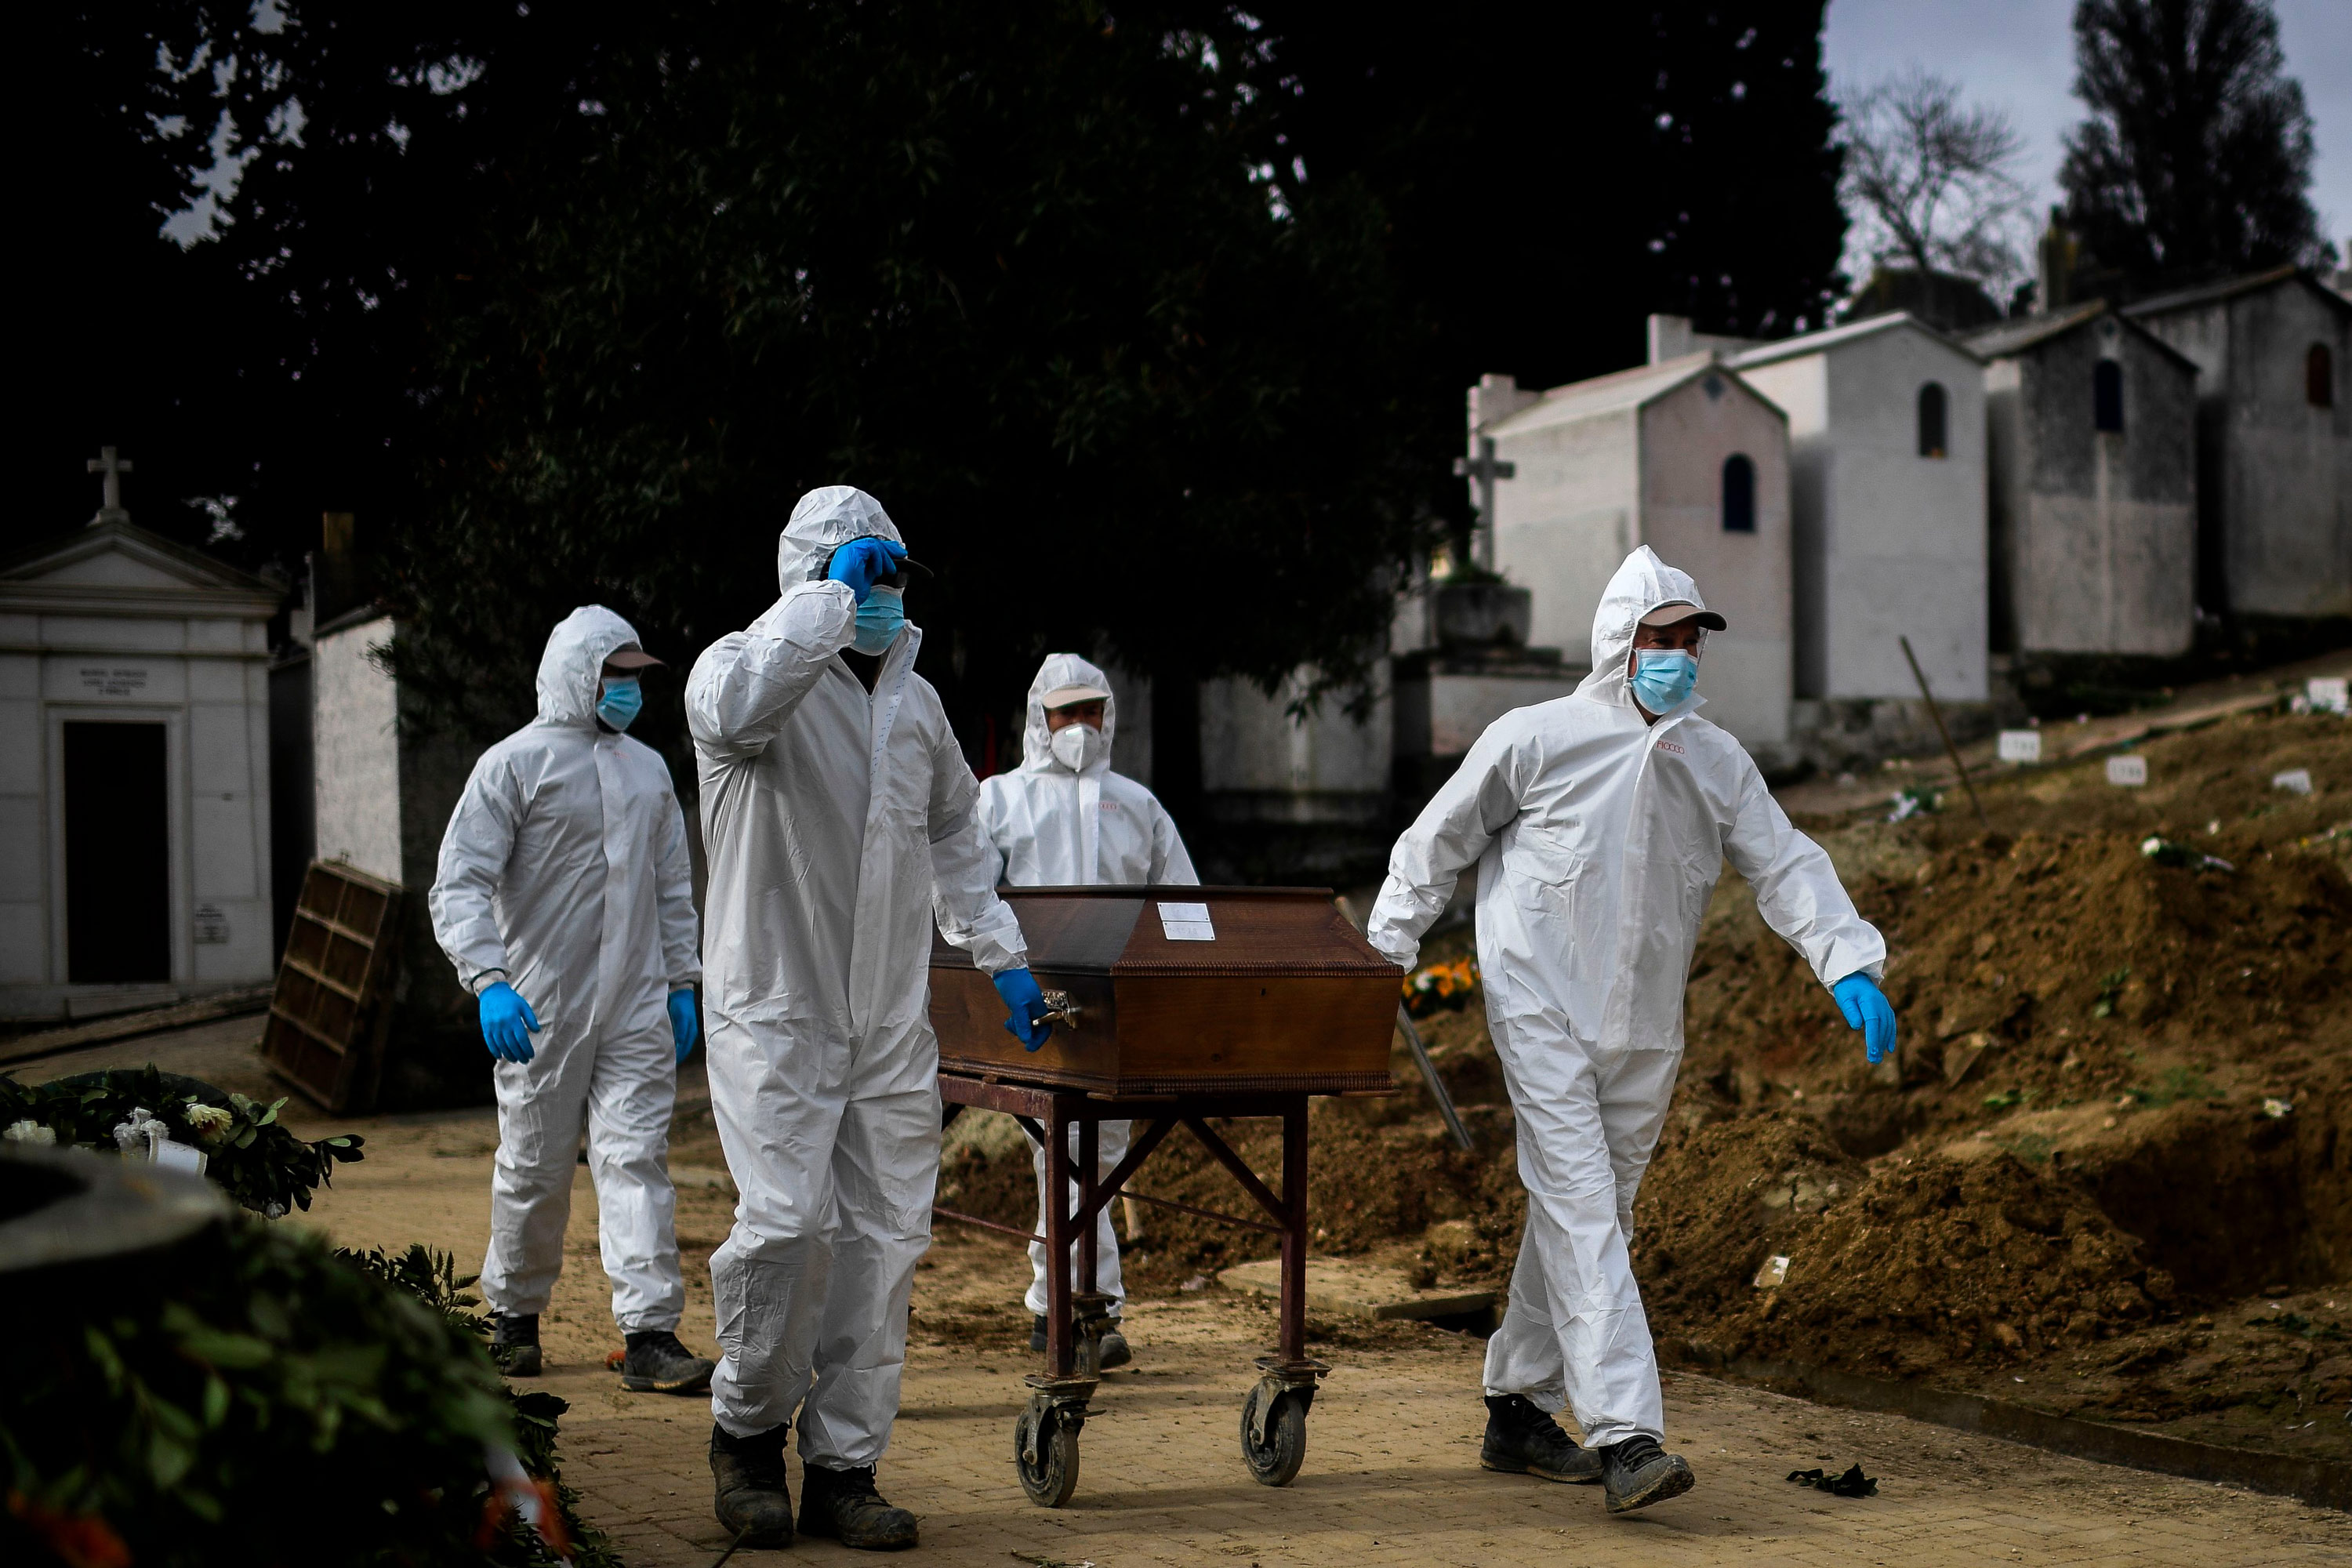 Grave diggers push the coffin of a Covid-19 victim before a burial at the Alto de Sao Joao cemetery in Lisbon, Portugal, on February 18.